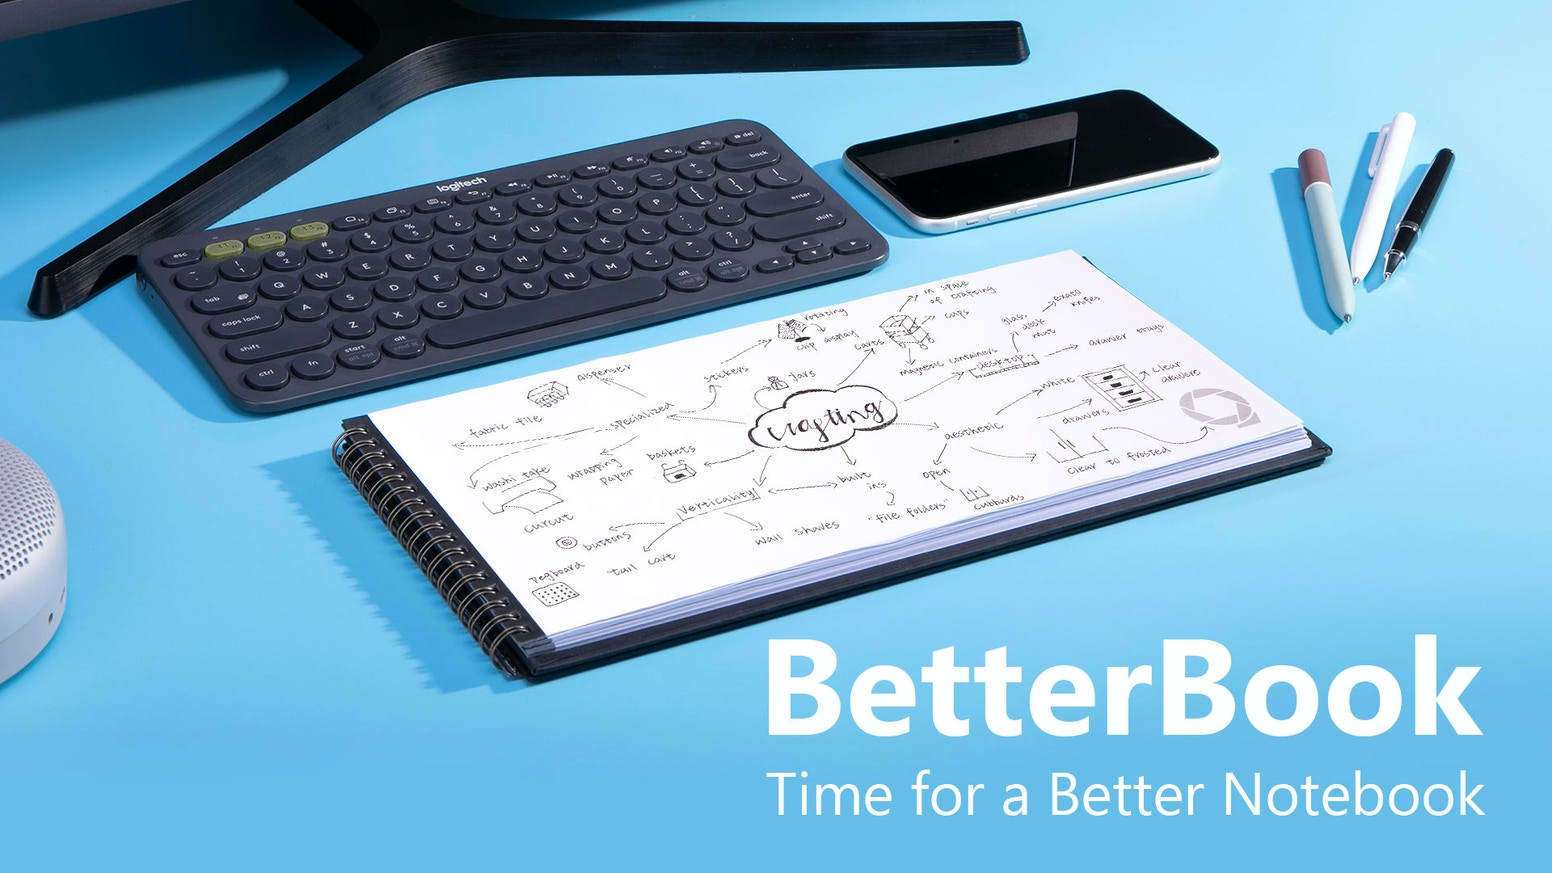 Betterbook is a better notebook to work and study with, and an ideal companion for computers, tablets, and smartphones.